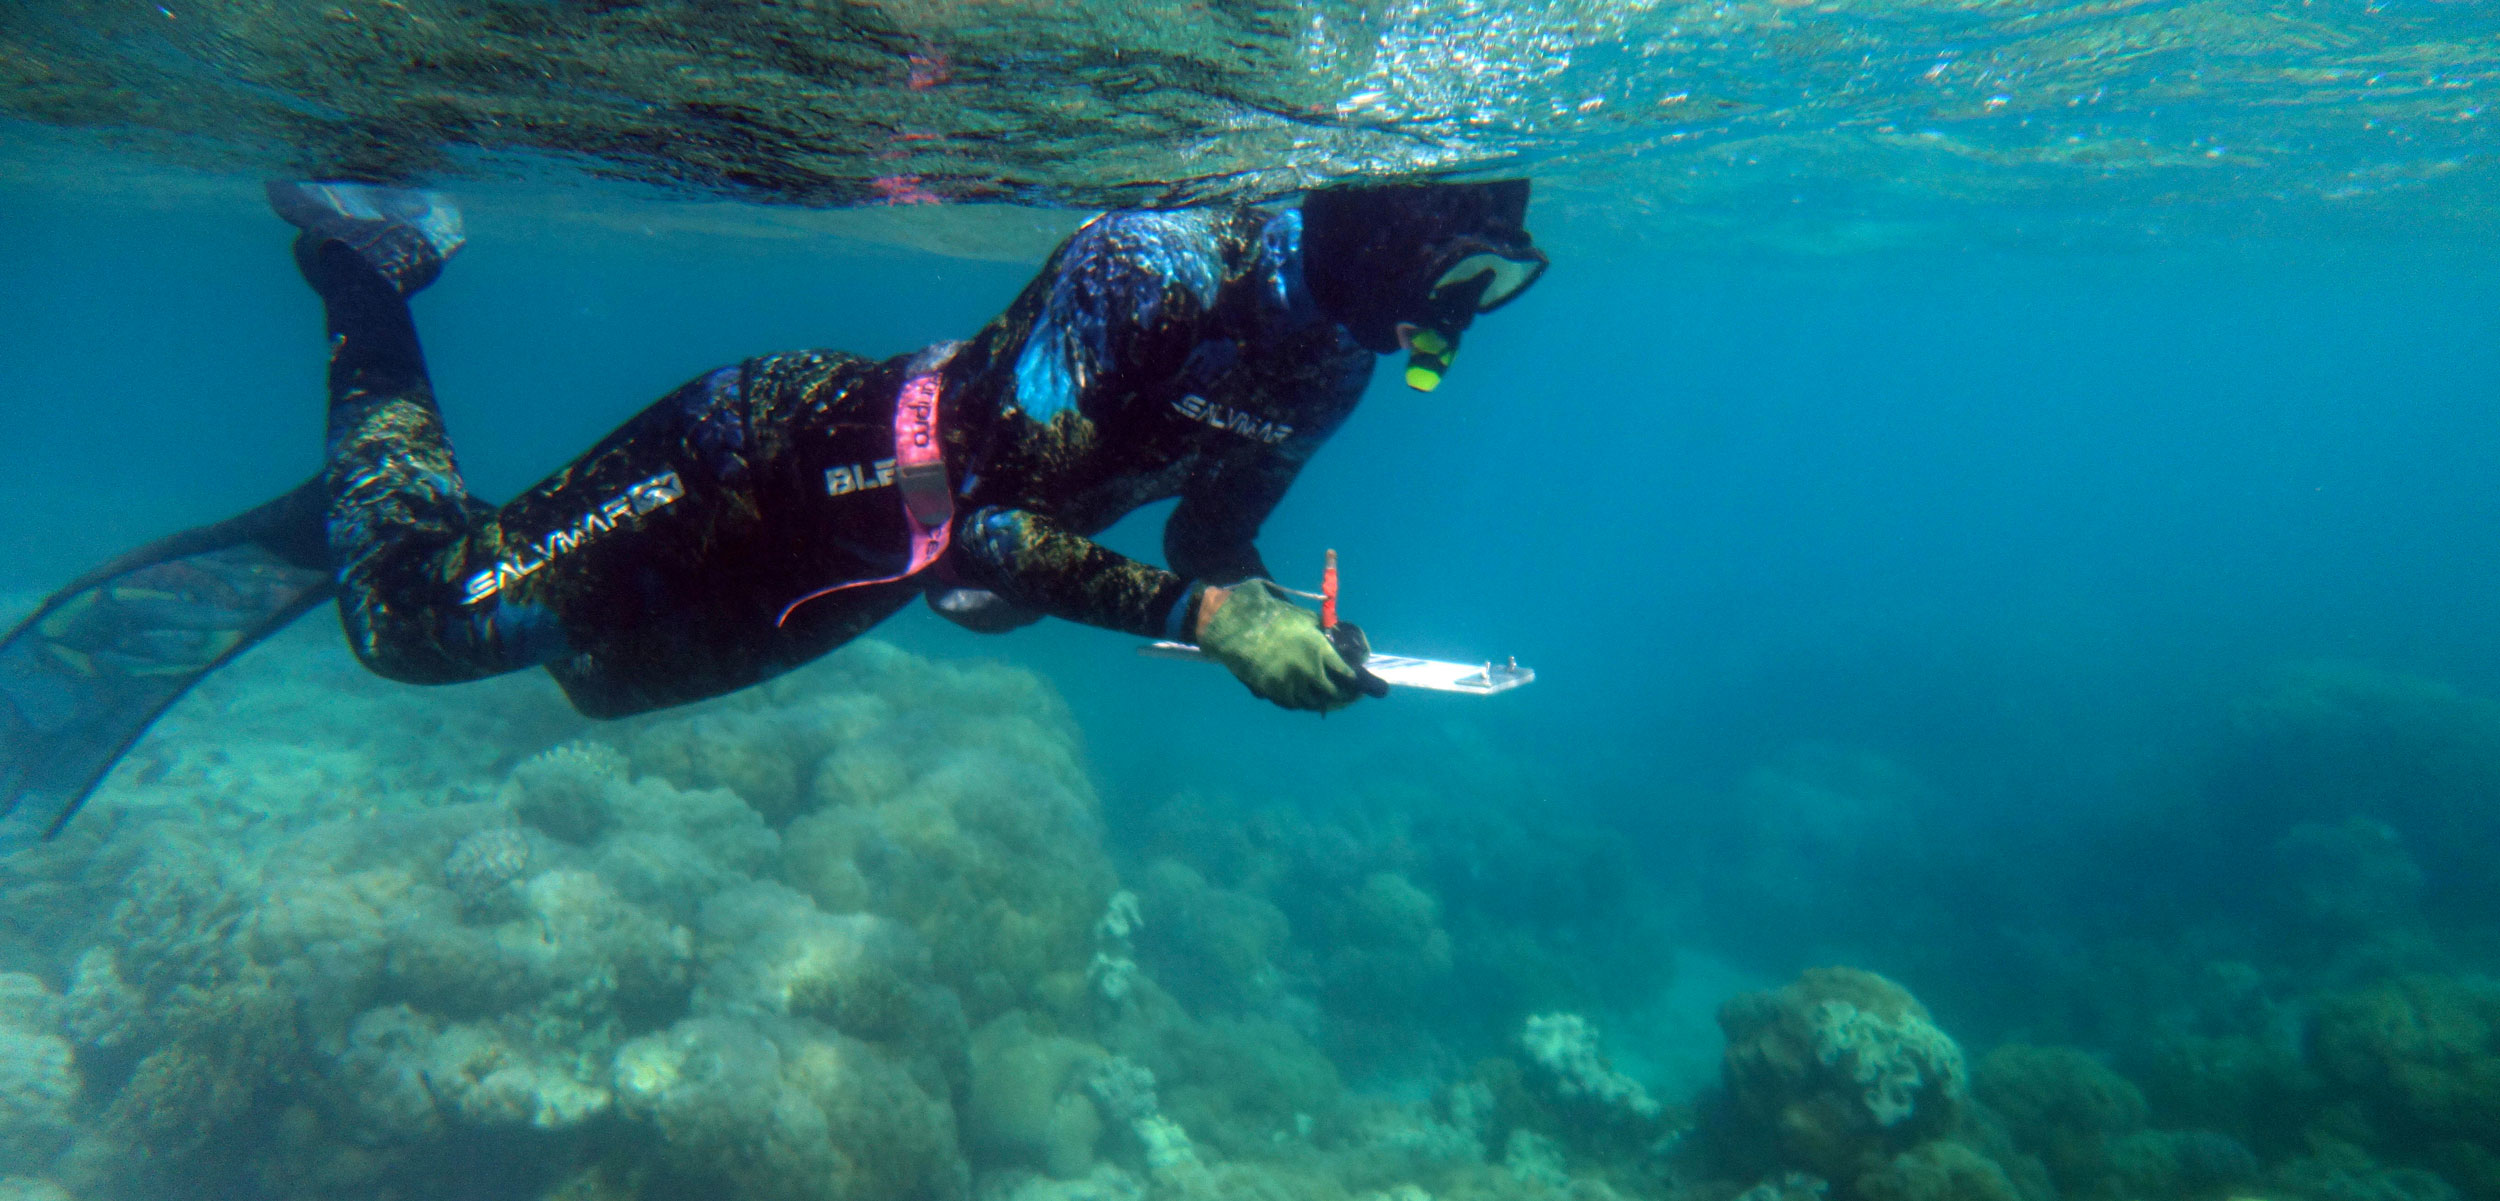 Snorkeller conducting underwater survey of coral health, Lizard Island, Great Barrier Reef, Queensland, Australia